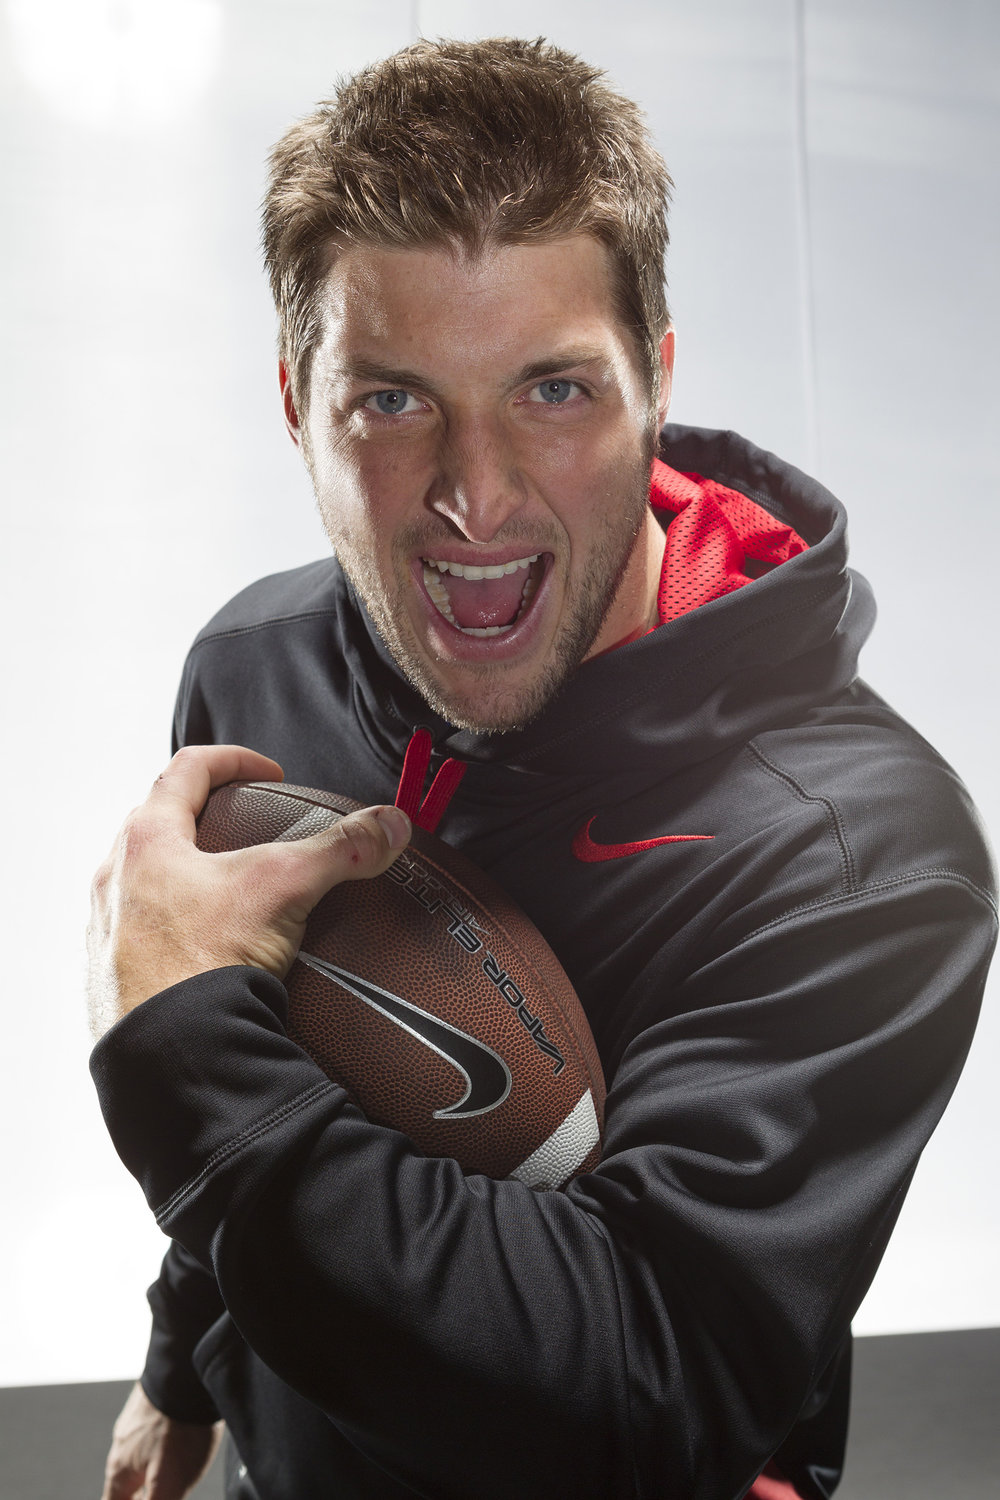 NIKE_NFL_TEBOW_50844_Before_2500px.jpg